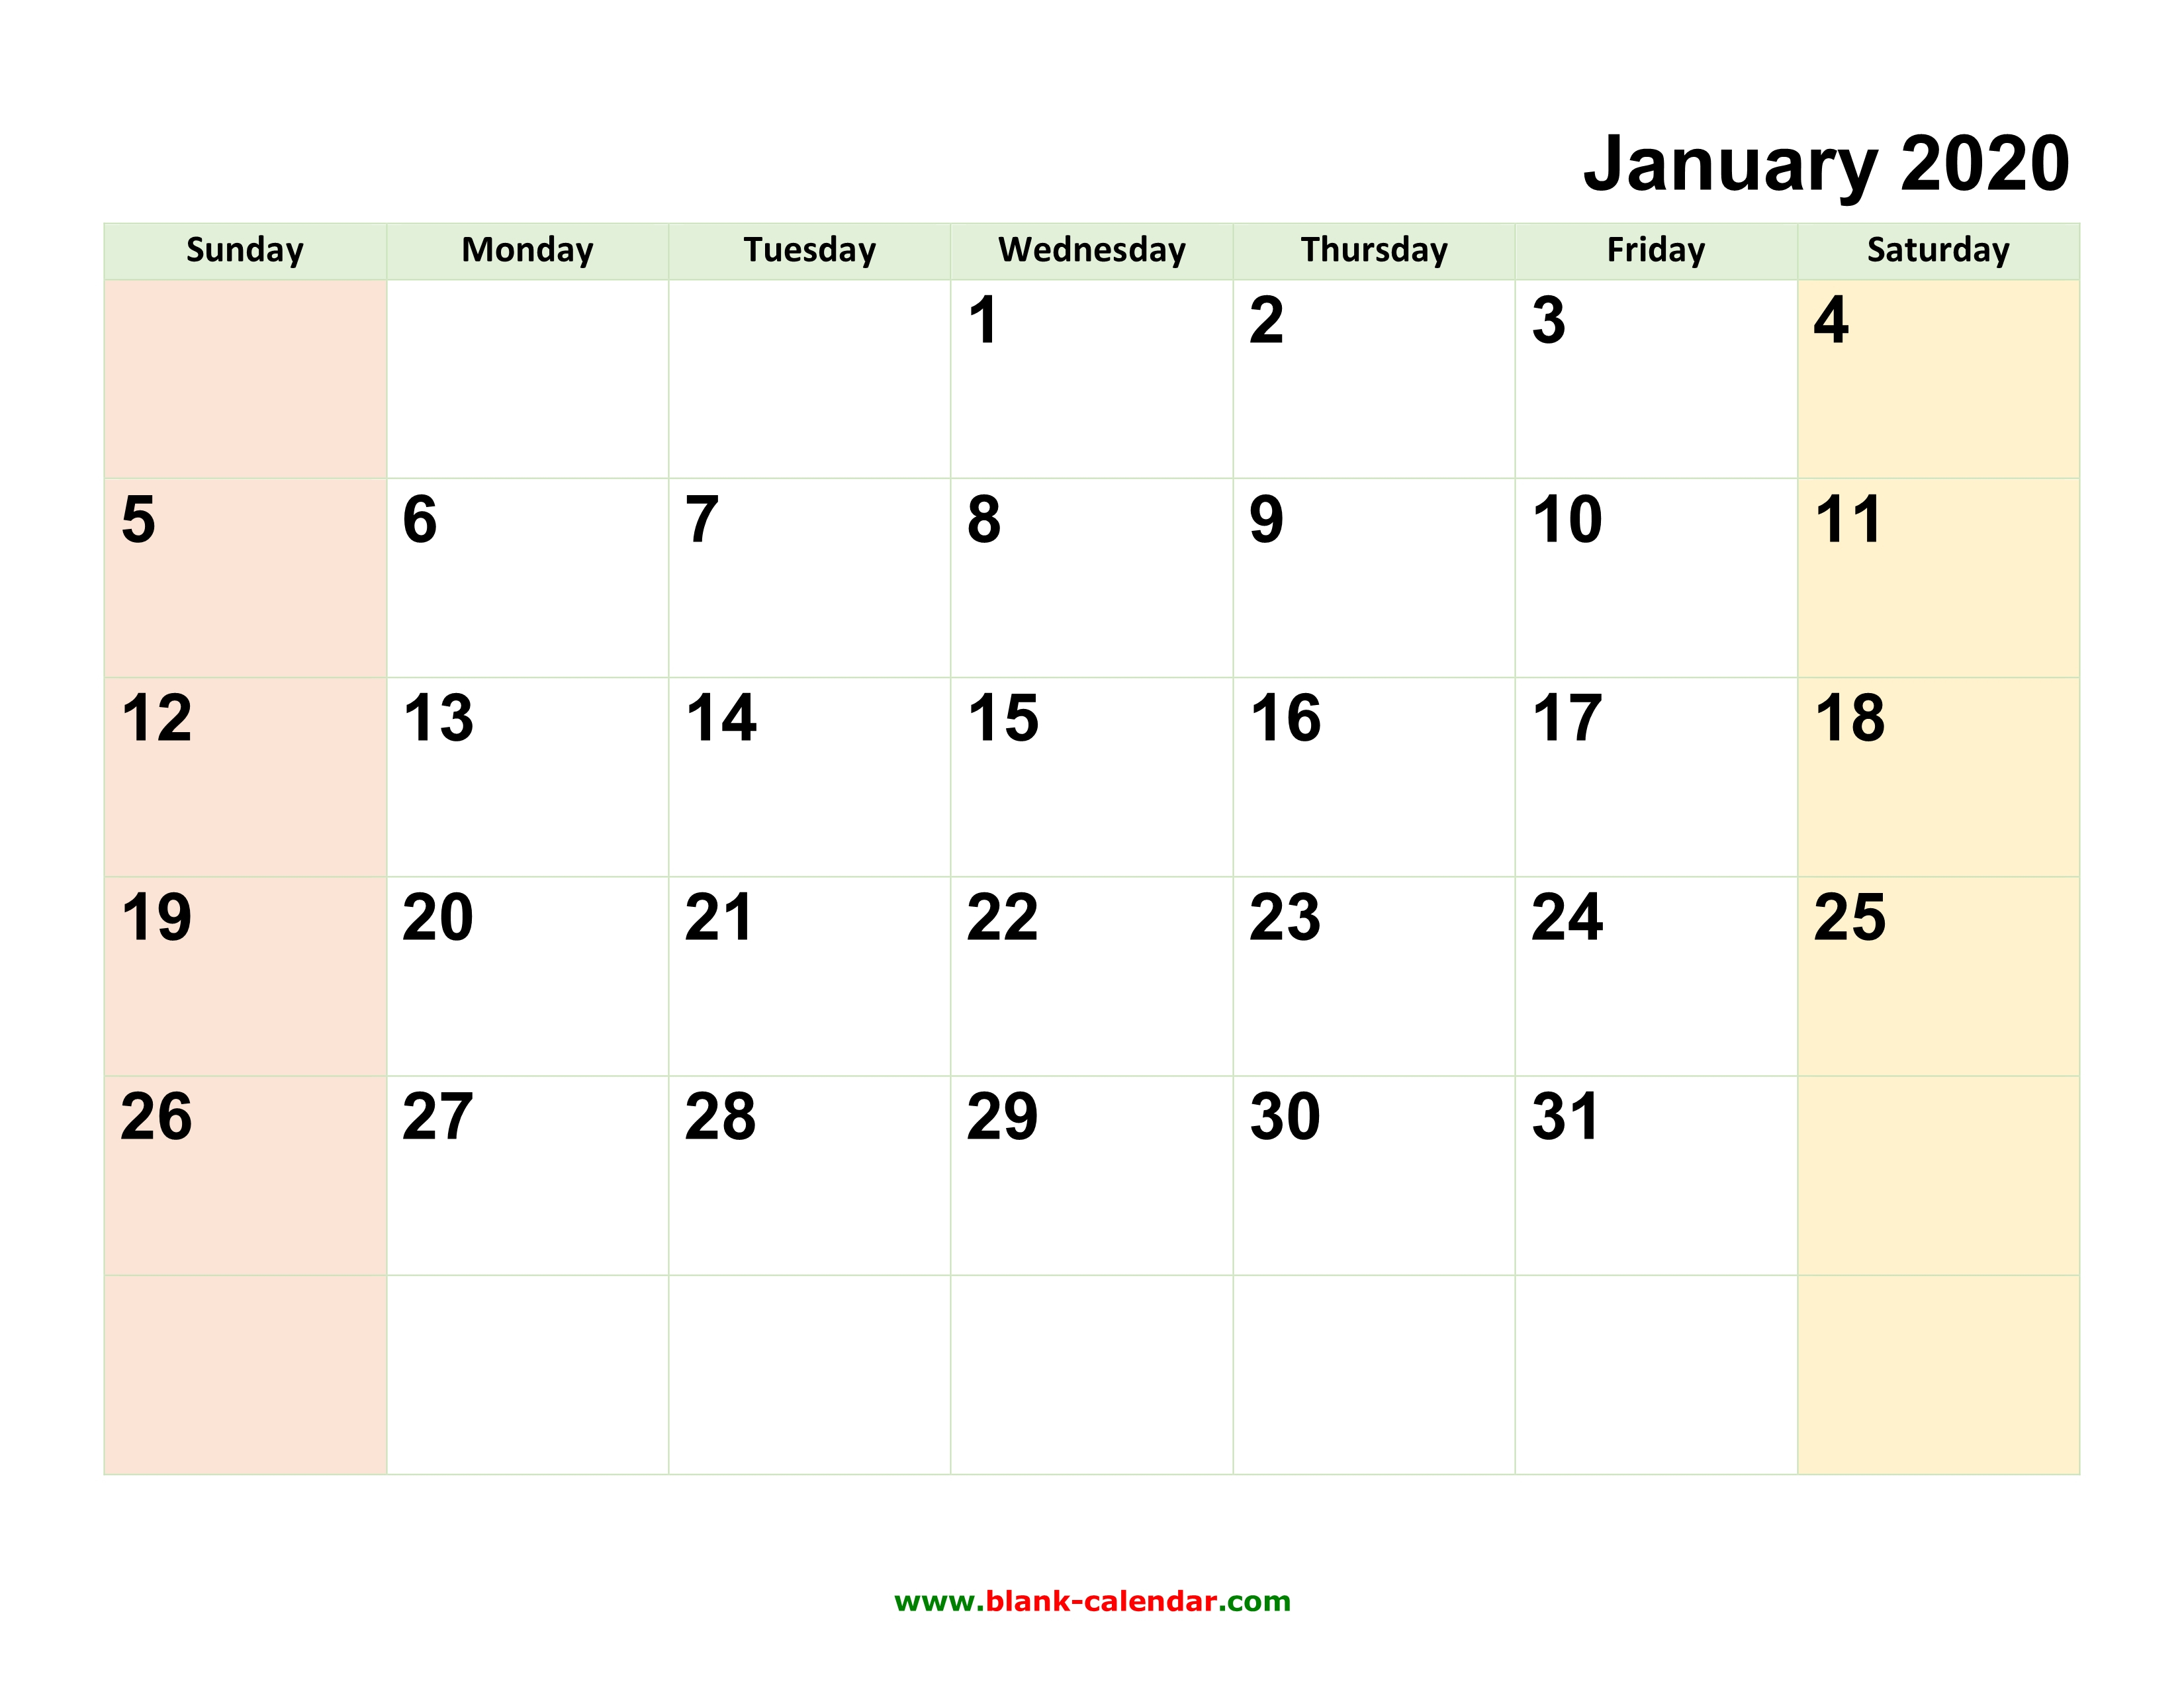 Monthly Calendar 2020 | Free Download, Editable And Printable in 2020 Calendar I Can Edit